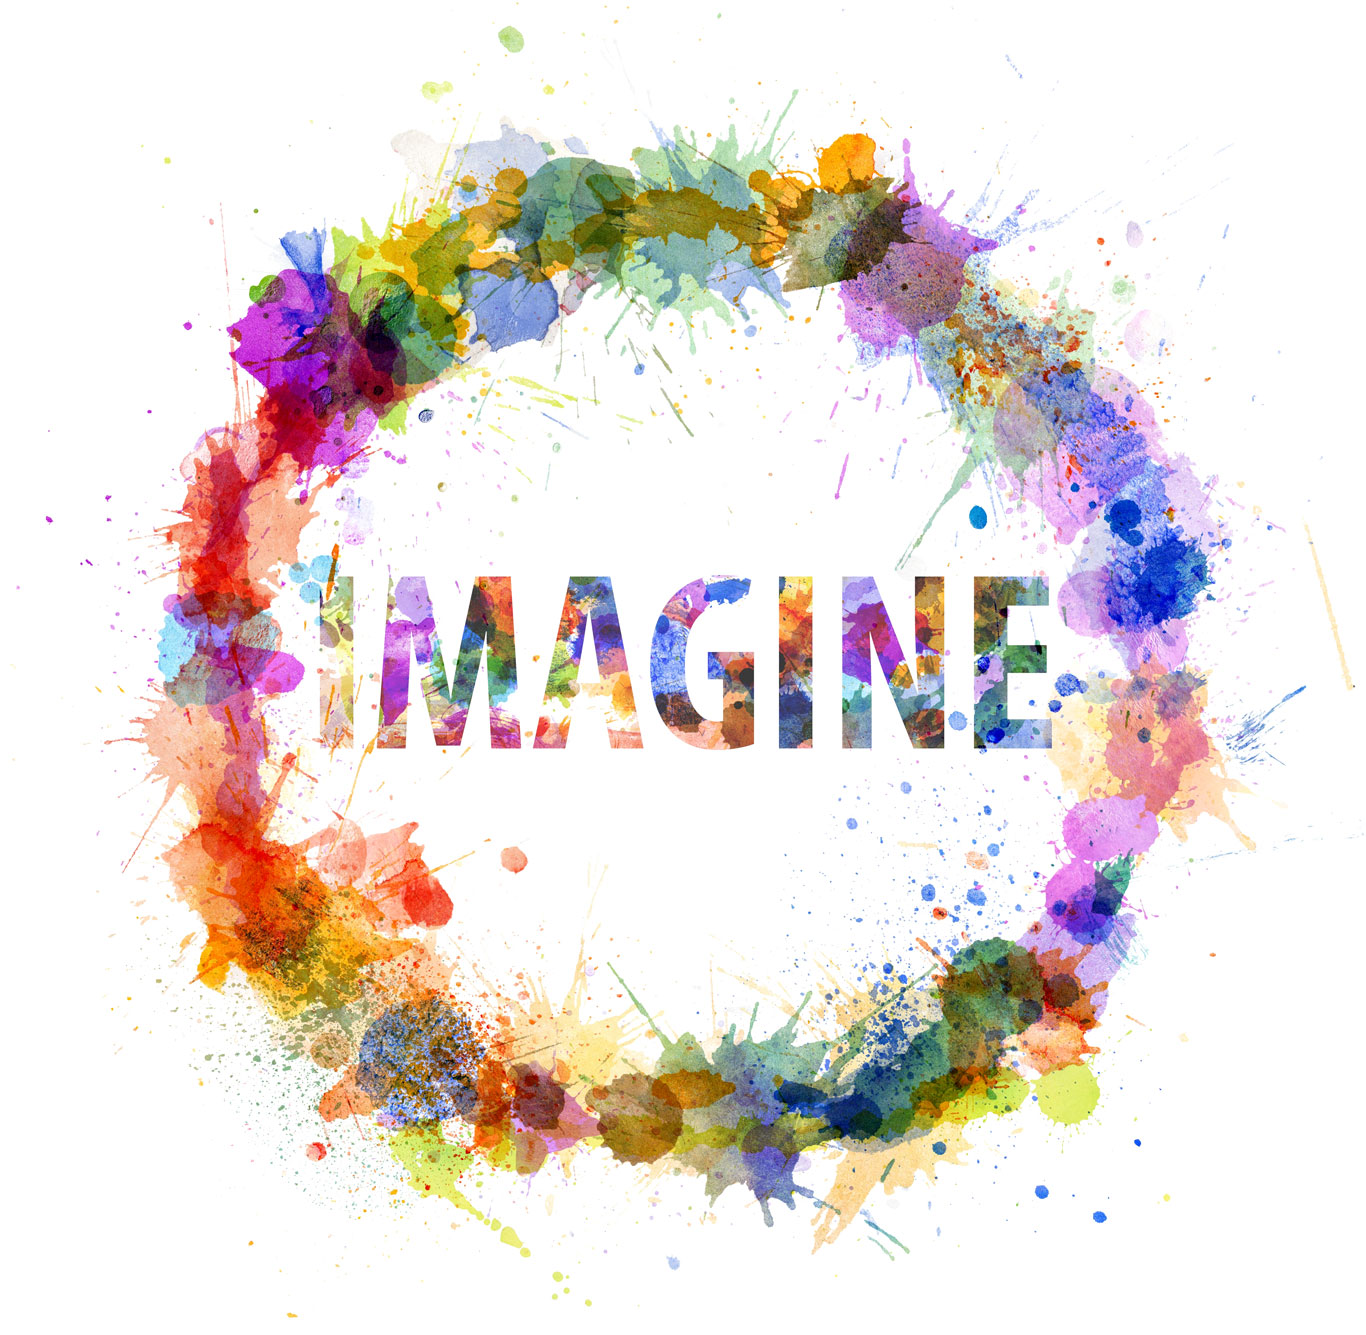 Arts-Imagine-1366-0619